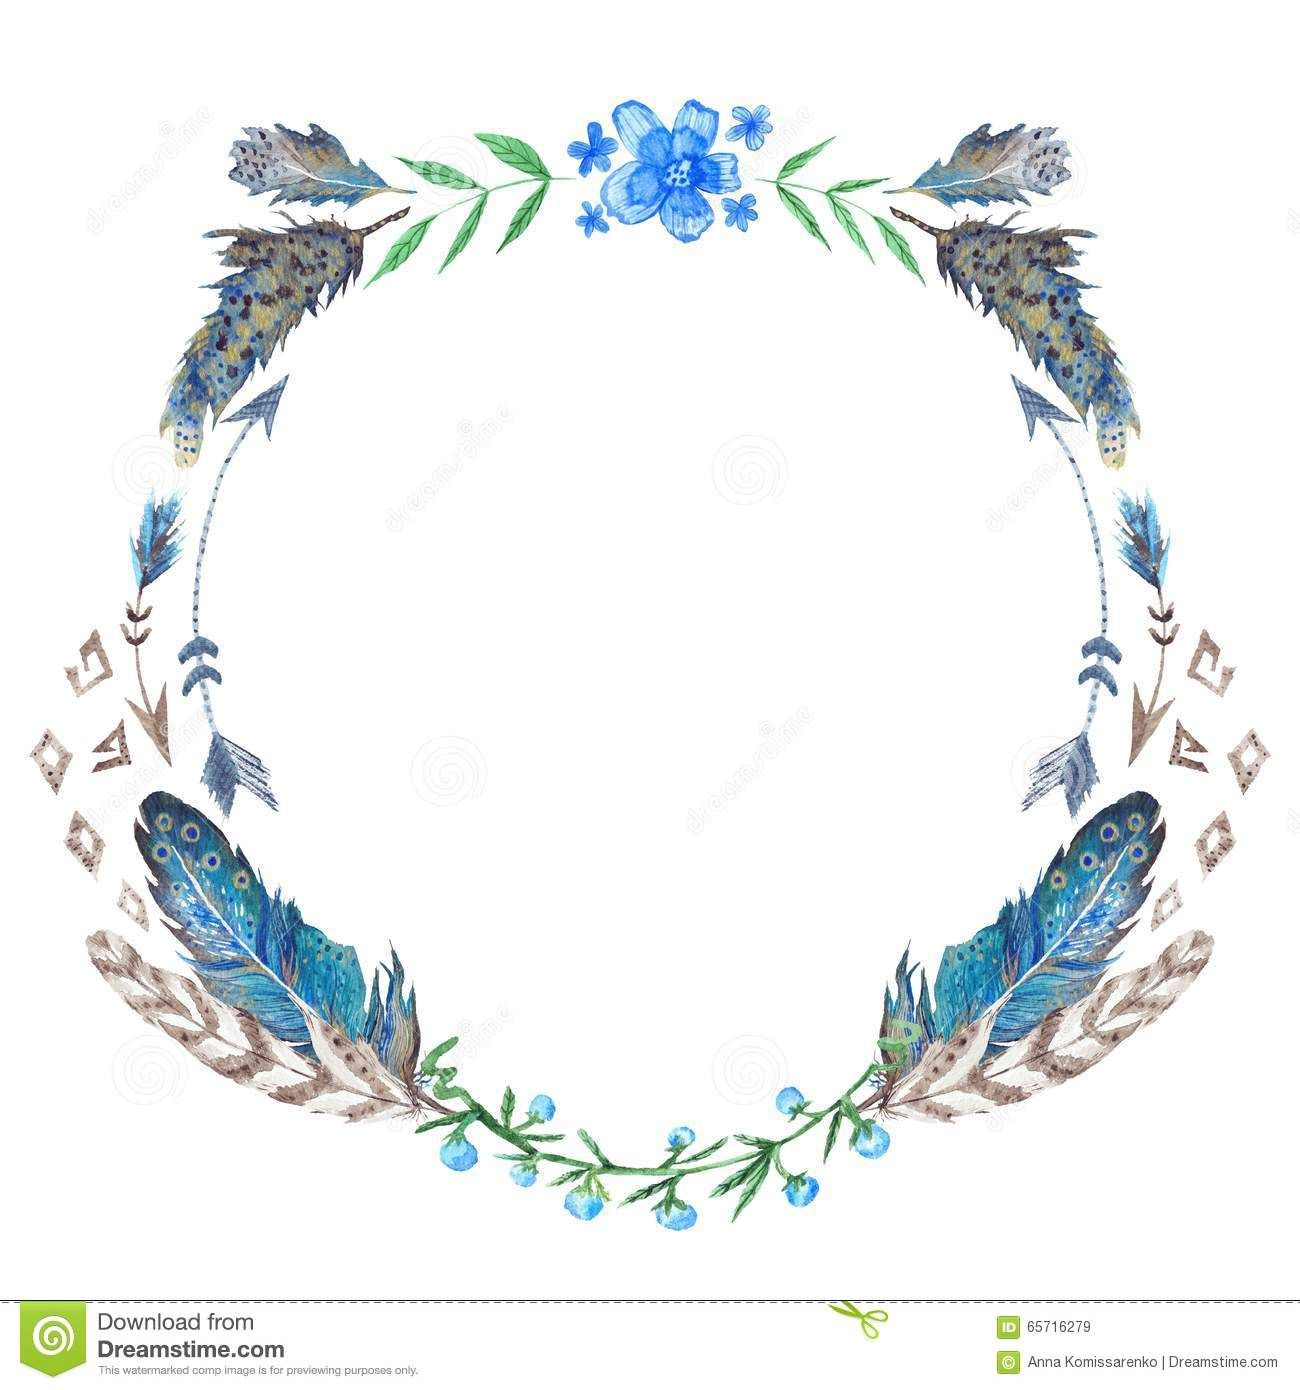 Watercolor boho wreath download from over 45 million high quality photo about creative tribal style round frame with blue forest flowers and feathers 65716279 izmirmasajfo Gallery